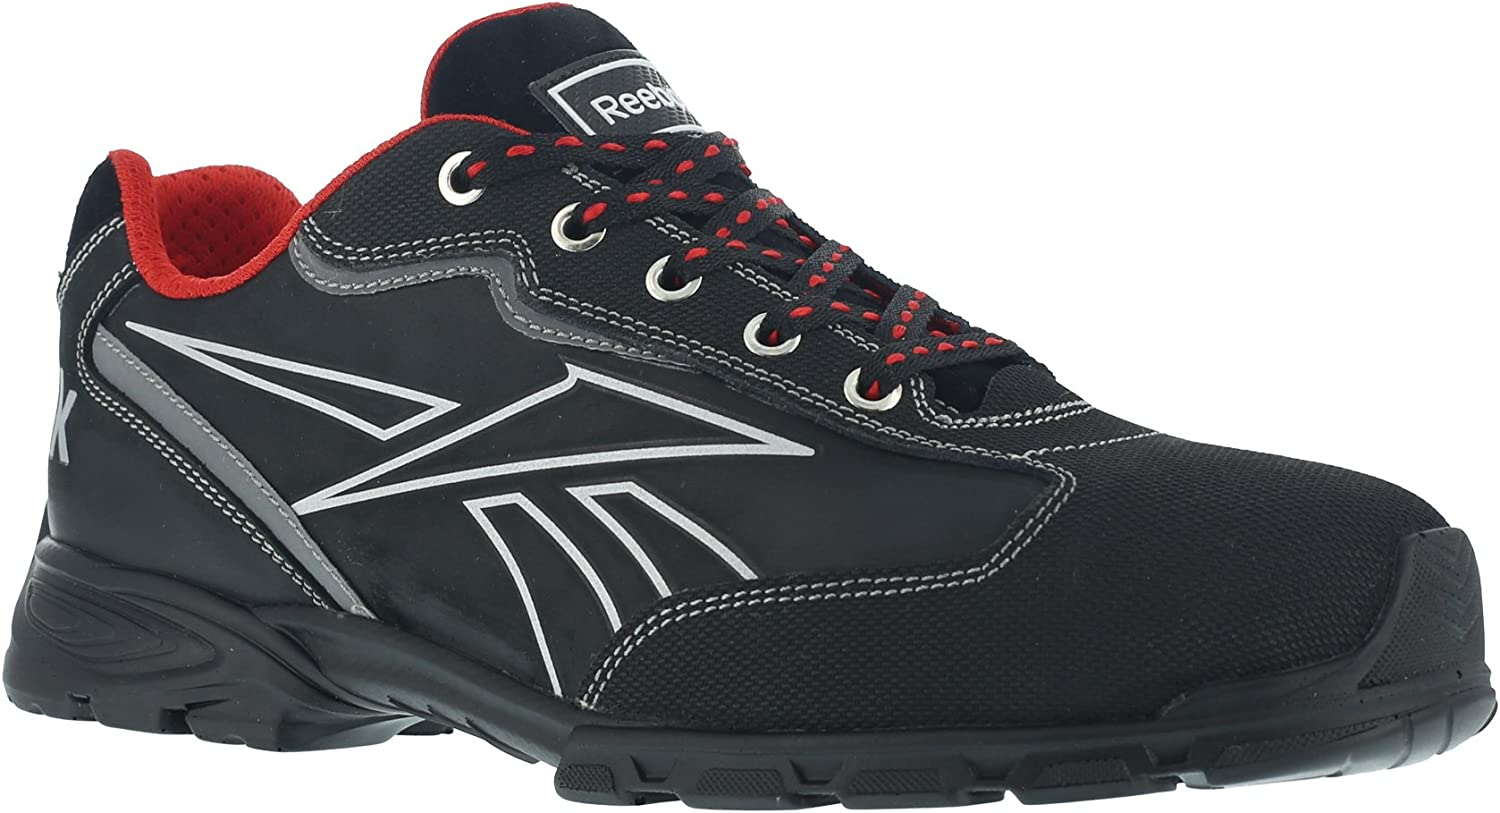 REEBOK WORK IB1011 S3 Audacious Sport Work shoes, Aluminium Toe, Waterproof, Size 43, Black Silver